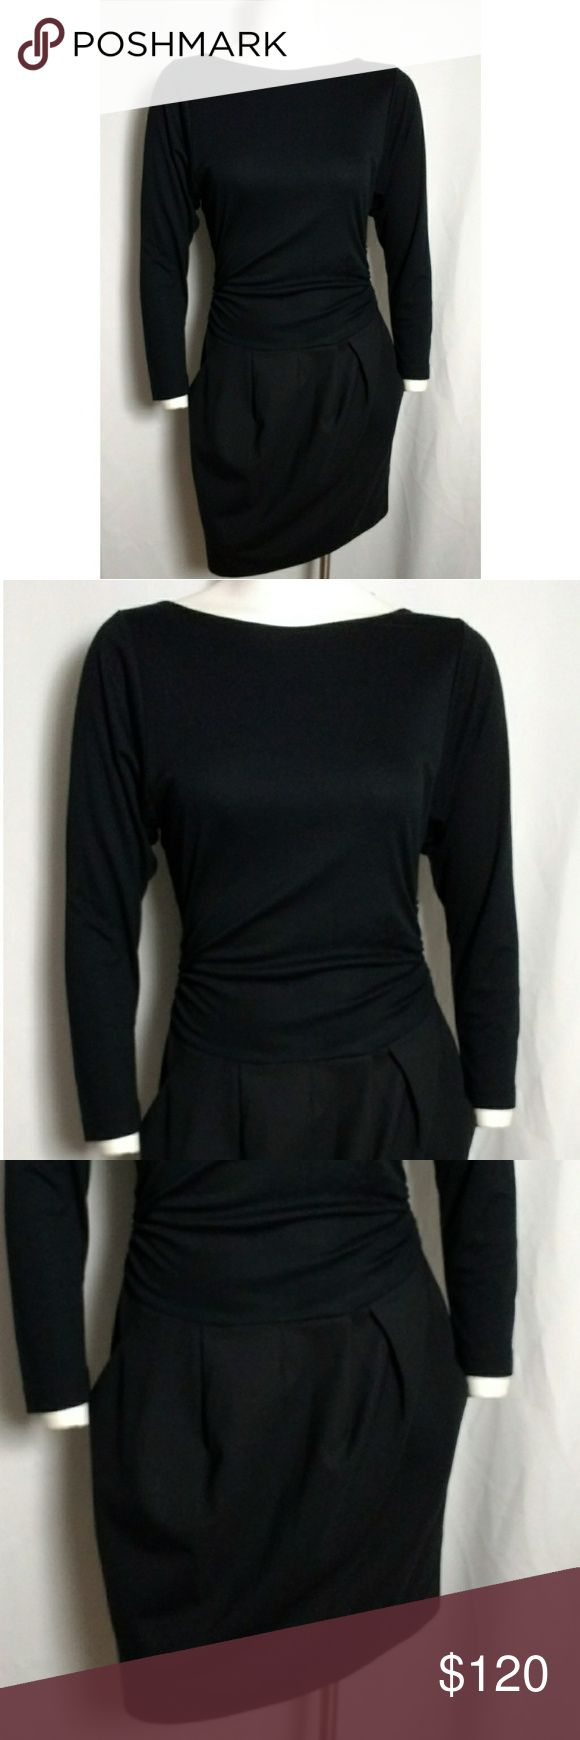 Theory Black Long Sleeve Short Dress Urban chic little black long sleeve dress! Features long sleeves, hidden side zip, sides are ruched, pleated lantern skirt, side pockets, high neckline, scoop back, combo fabric is awesome! The top is super soft! the bottom is wool. For the sophisticated contemporary woman!   // 96% Wool - 4% Lycra  // 59% Modal - 41% Triacetate Theory Dresses